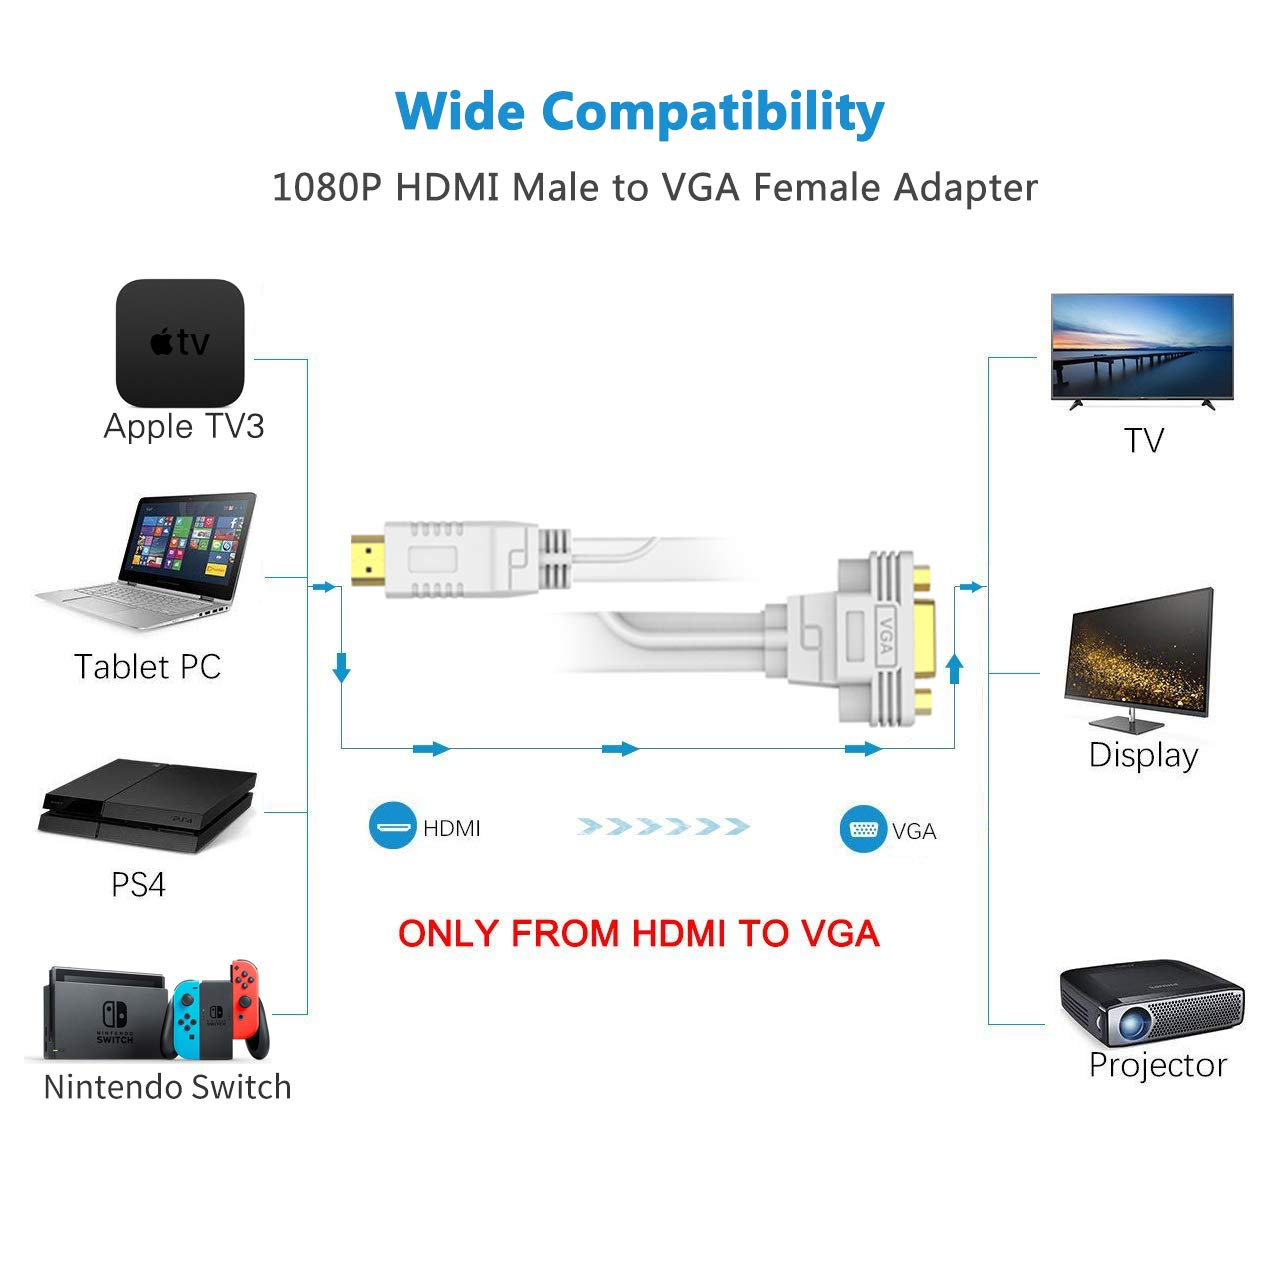 Cavo Adattatore HDMI a VGA 15M//Metri con Audio,Convertitore//Connettore Filo HDMI to VGA,FOINNEX Attivo Connettori//Adapter Cable Maschio HDMI VGA per PC,PS4//3,Xbox,NS,Mac a TV,Monitor,Proiettore,1080P